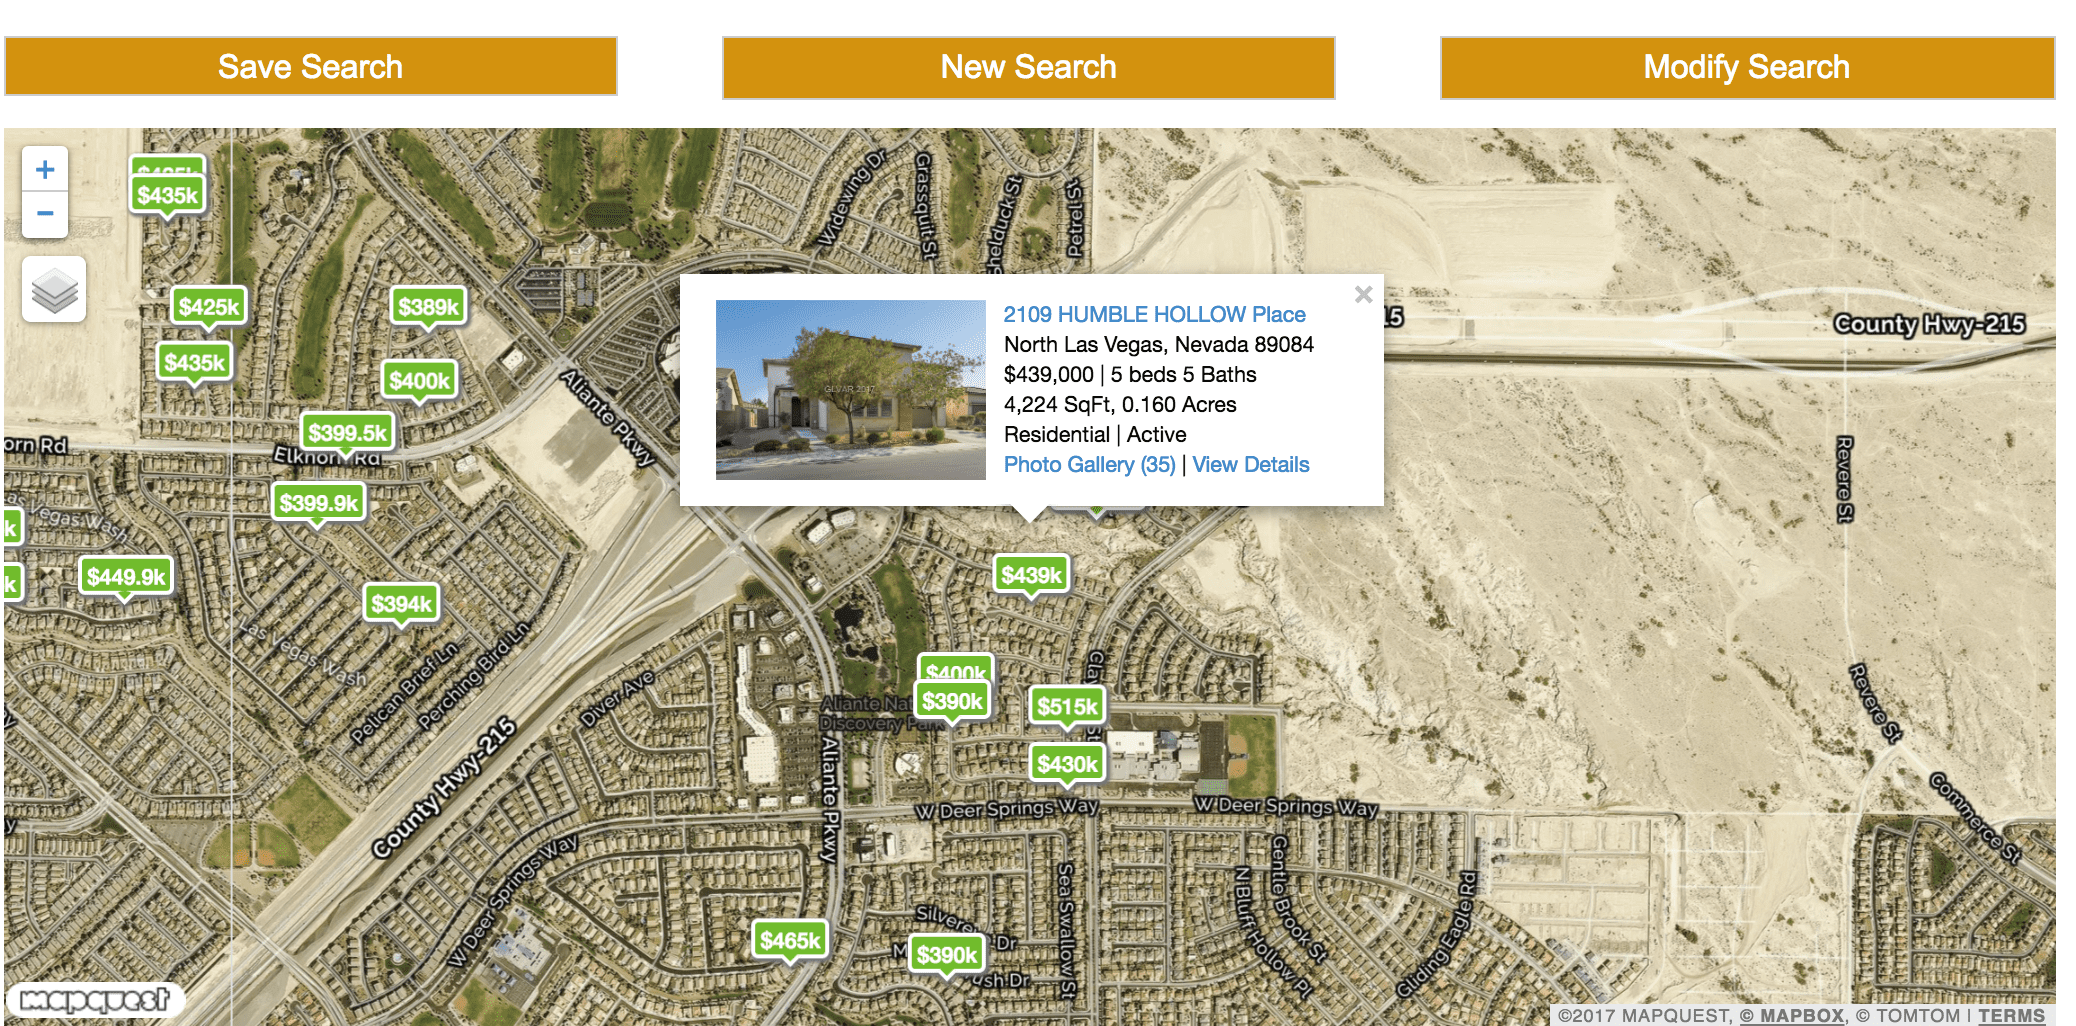 Map of Homes for Sale in Aliante North Las Vegas with prices of homes showing